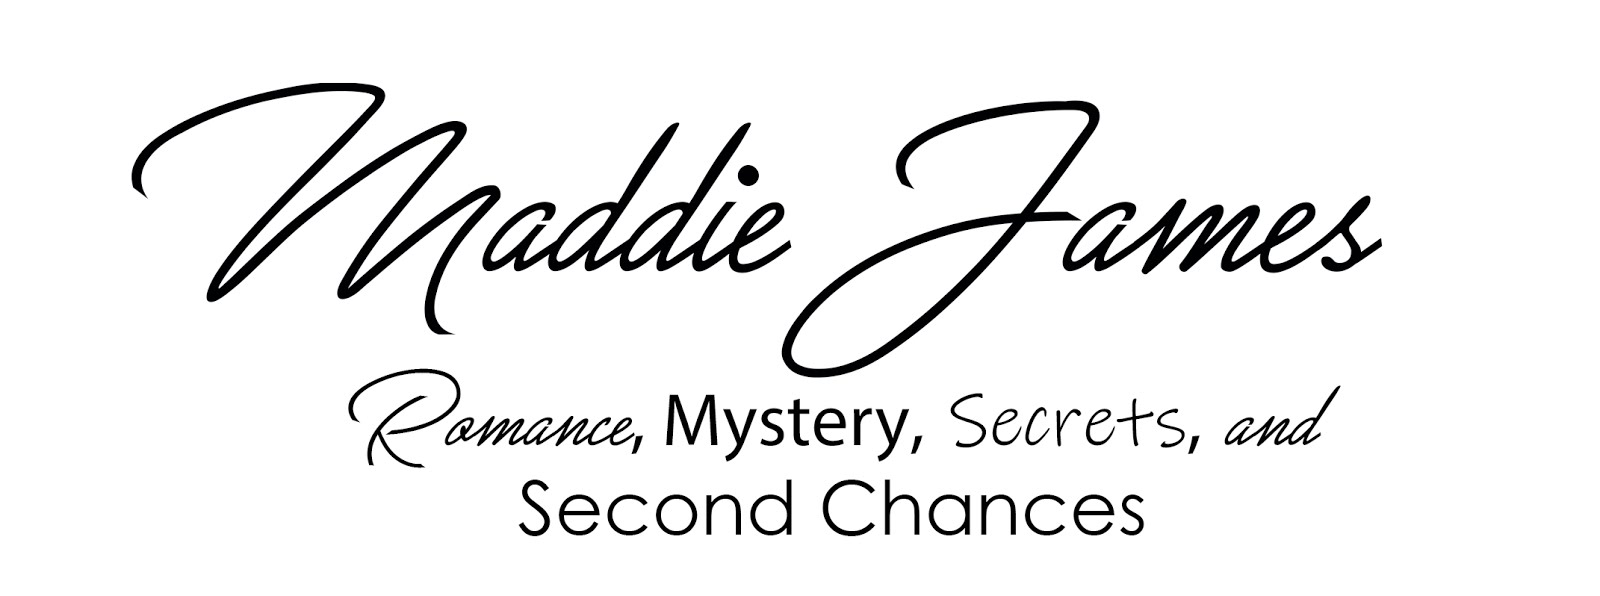 Bestselling Author, Maddie James